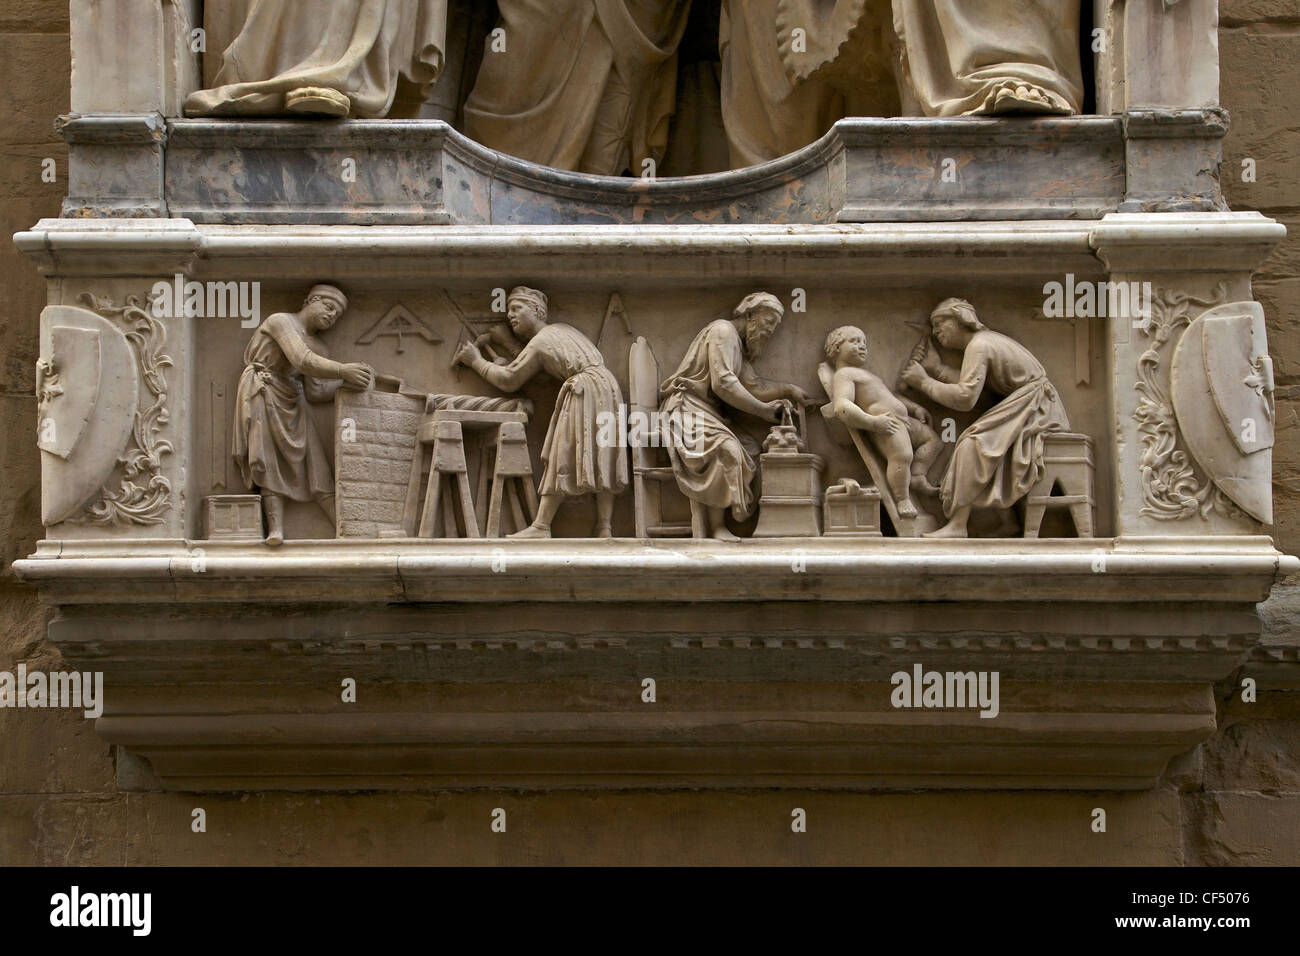 Carpenters and stonemasons at work, marble relief frieze, exterior of Orsanmichele, Florence, Tuscany, Italy, Europe - Stock Image